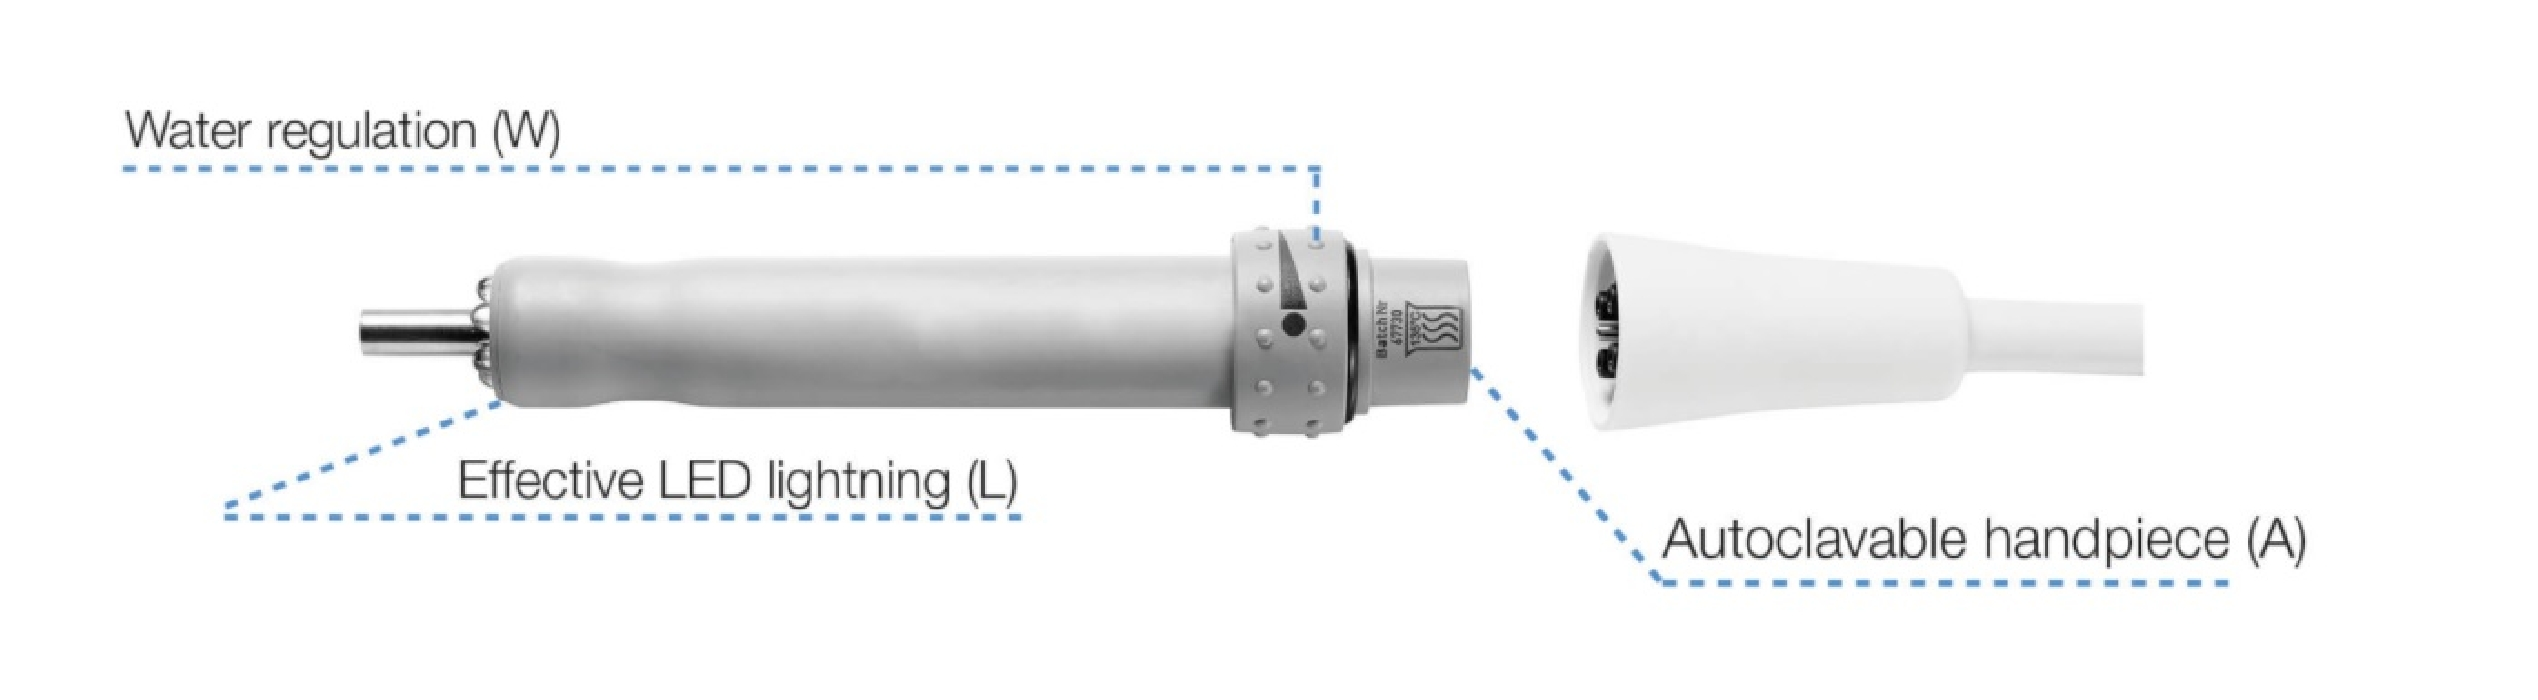 An image of LM ProPower Handpiece Ultra LED without Water Control